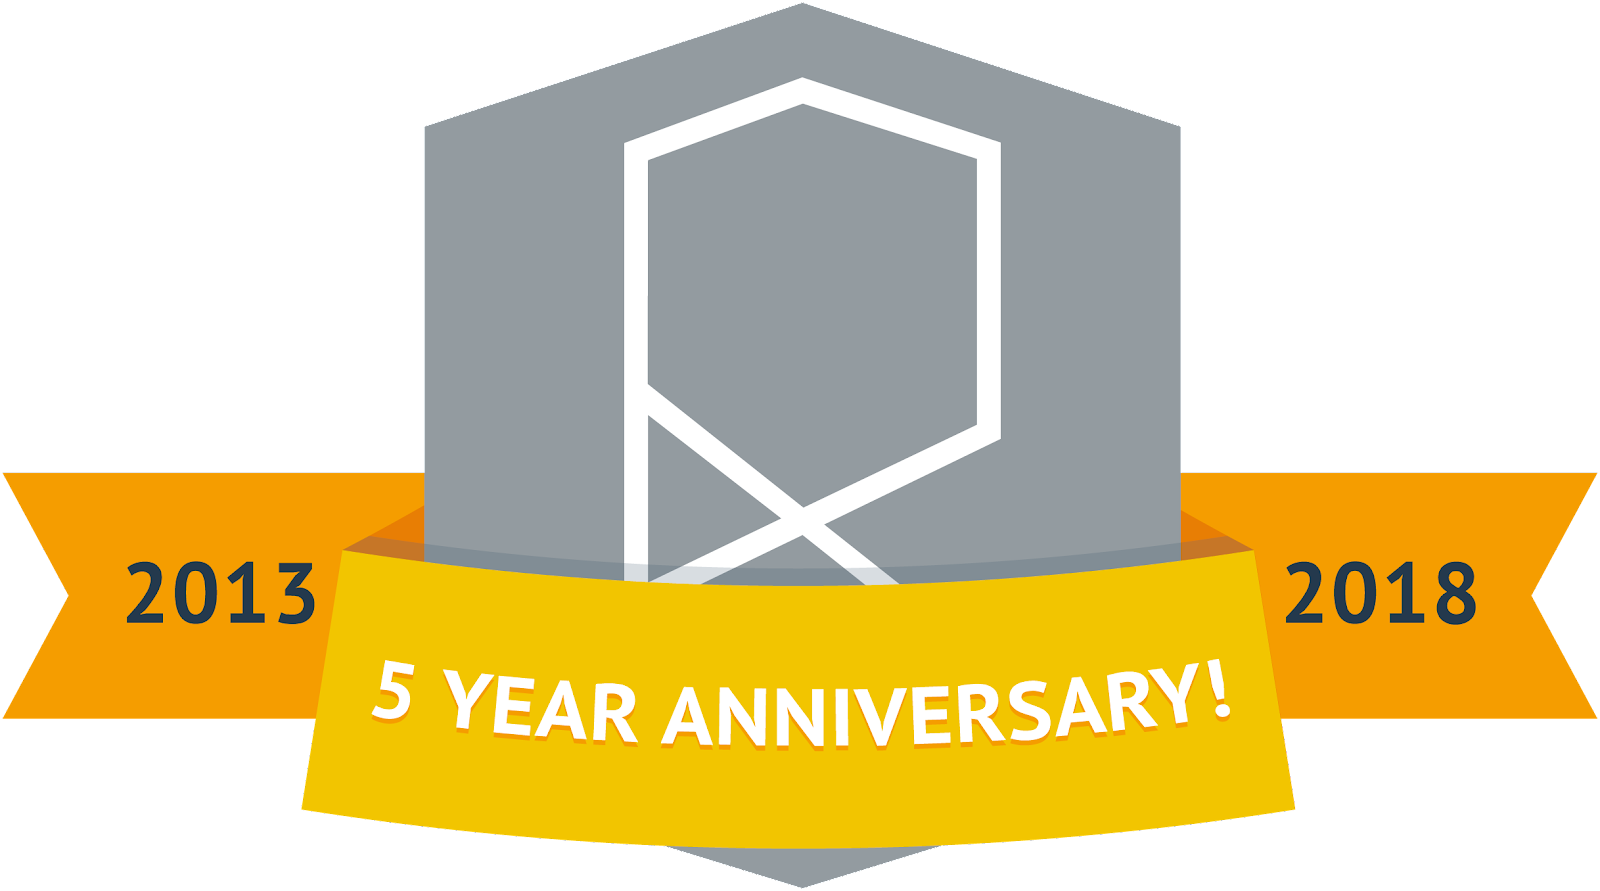 Internet Policy Review Logo Five Year Anniversary 2013 - 2018